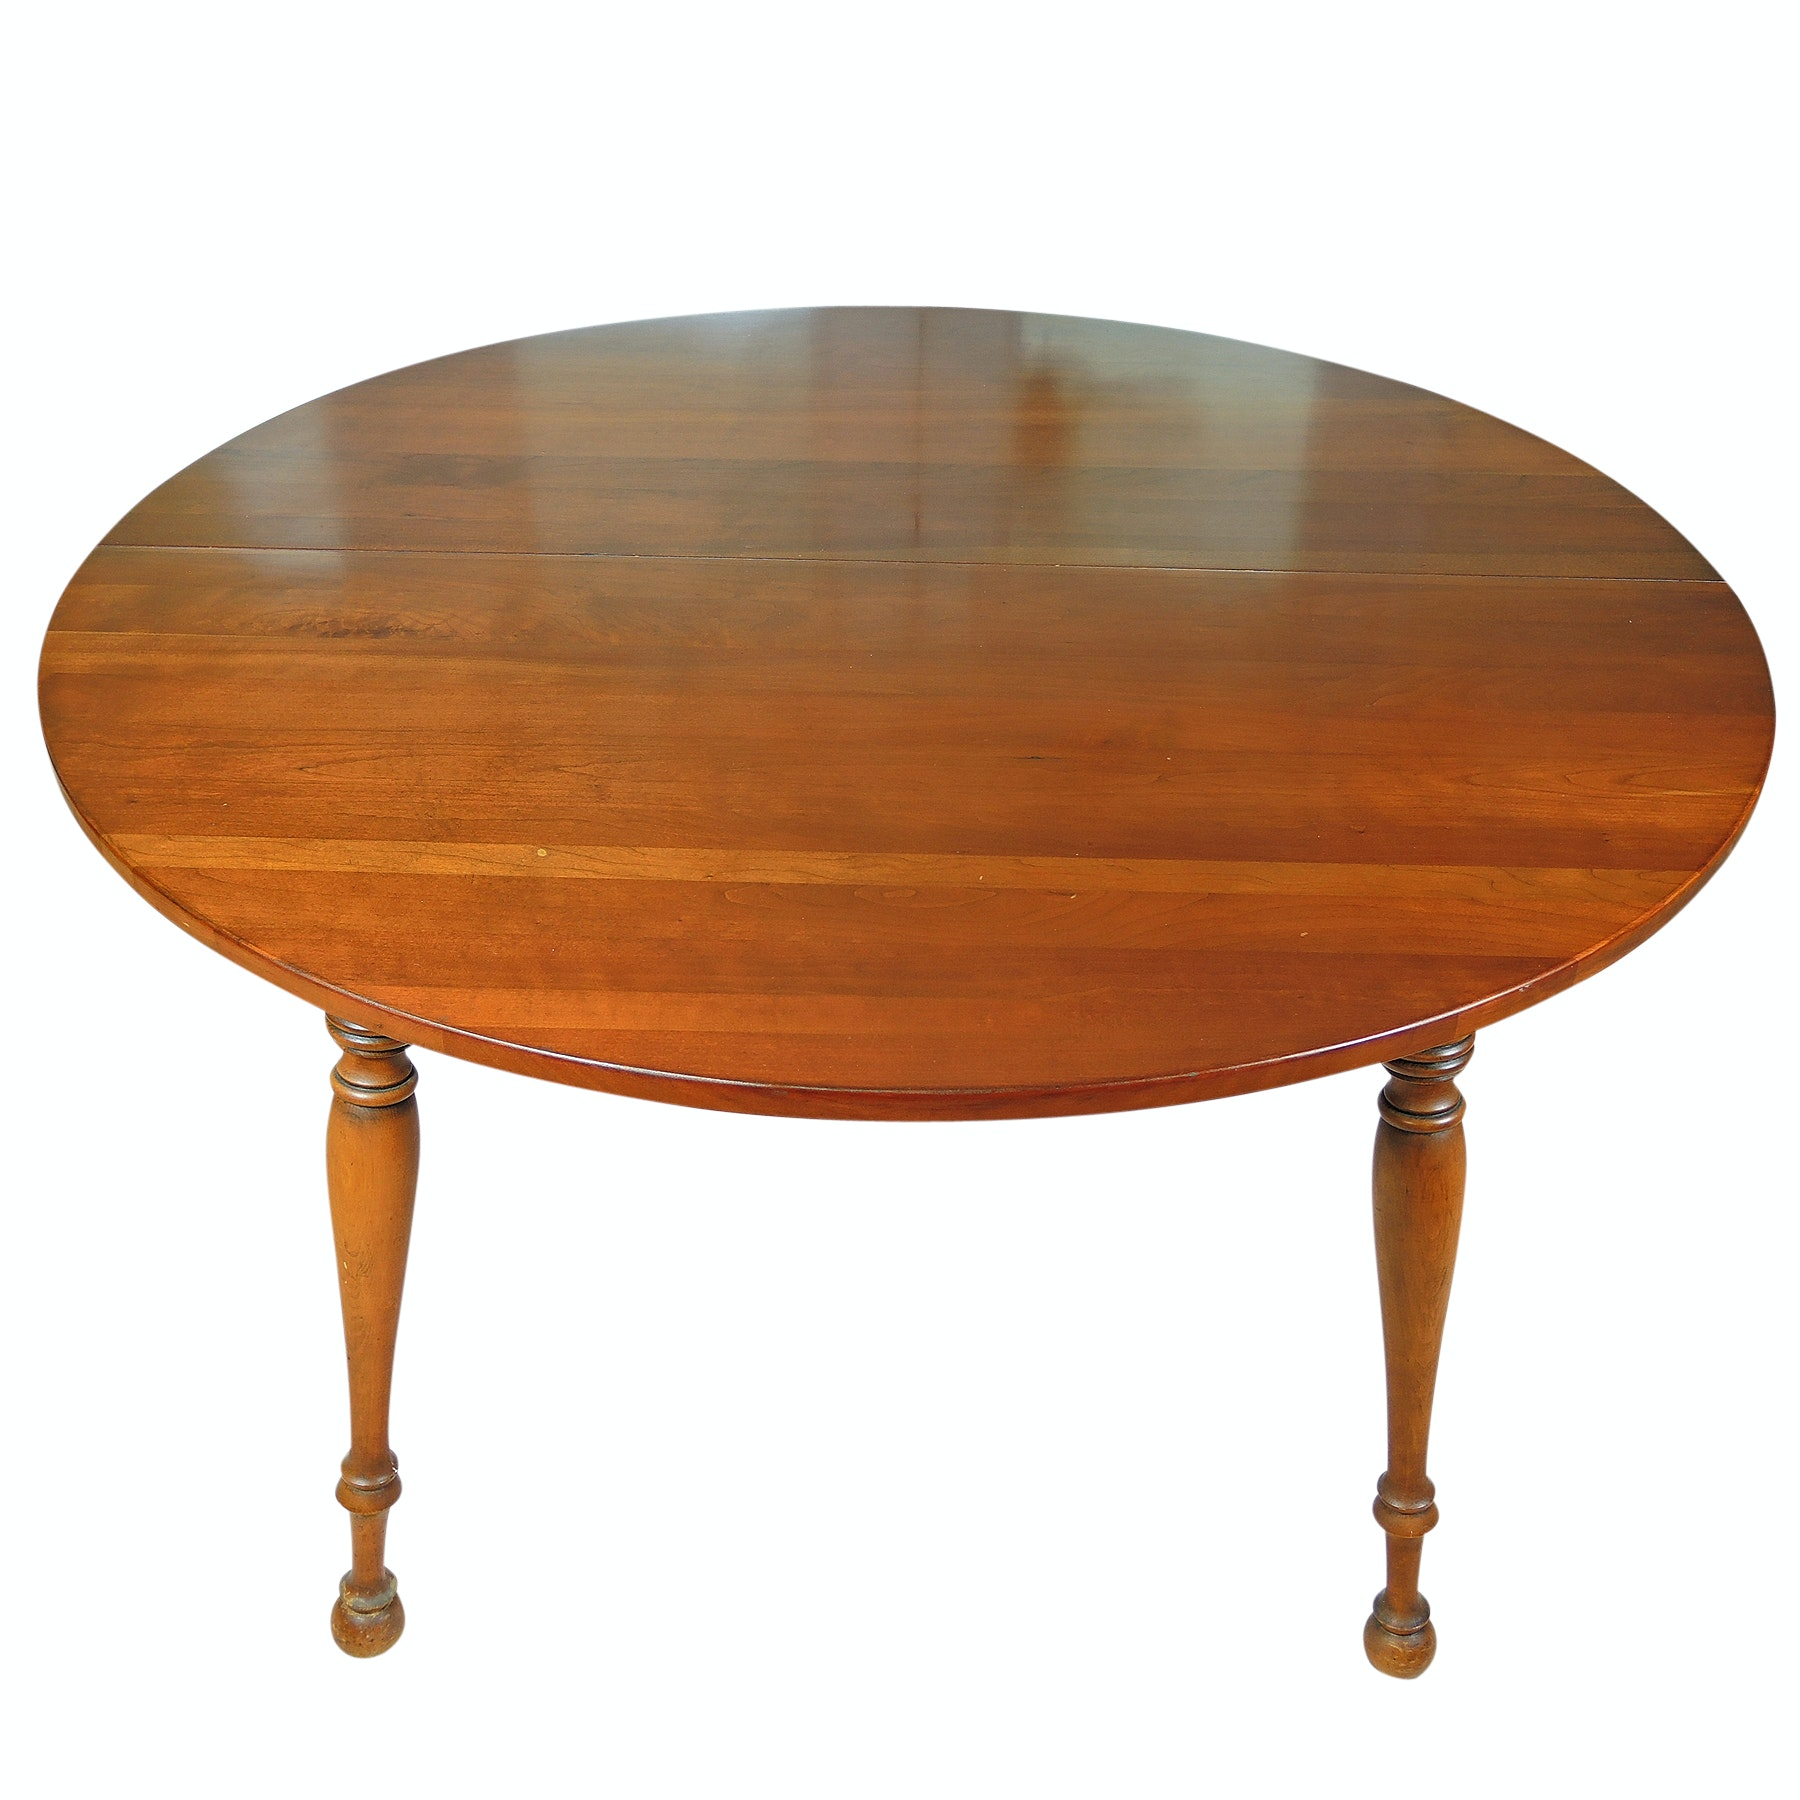 Vintage Round Cherry Table with Two Leaves and Pads